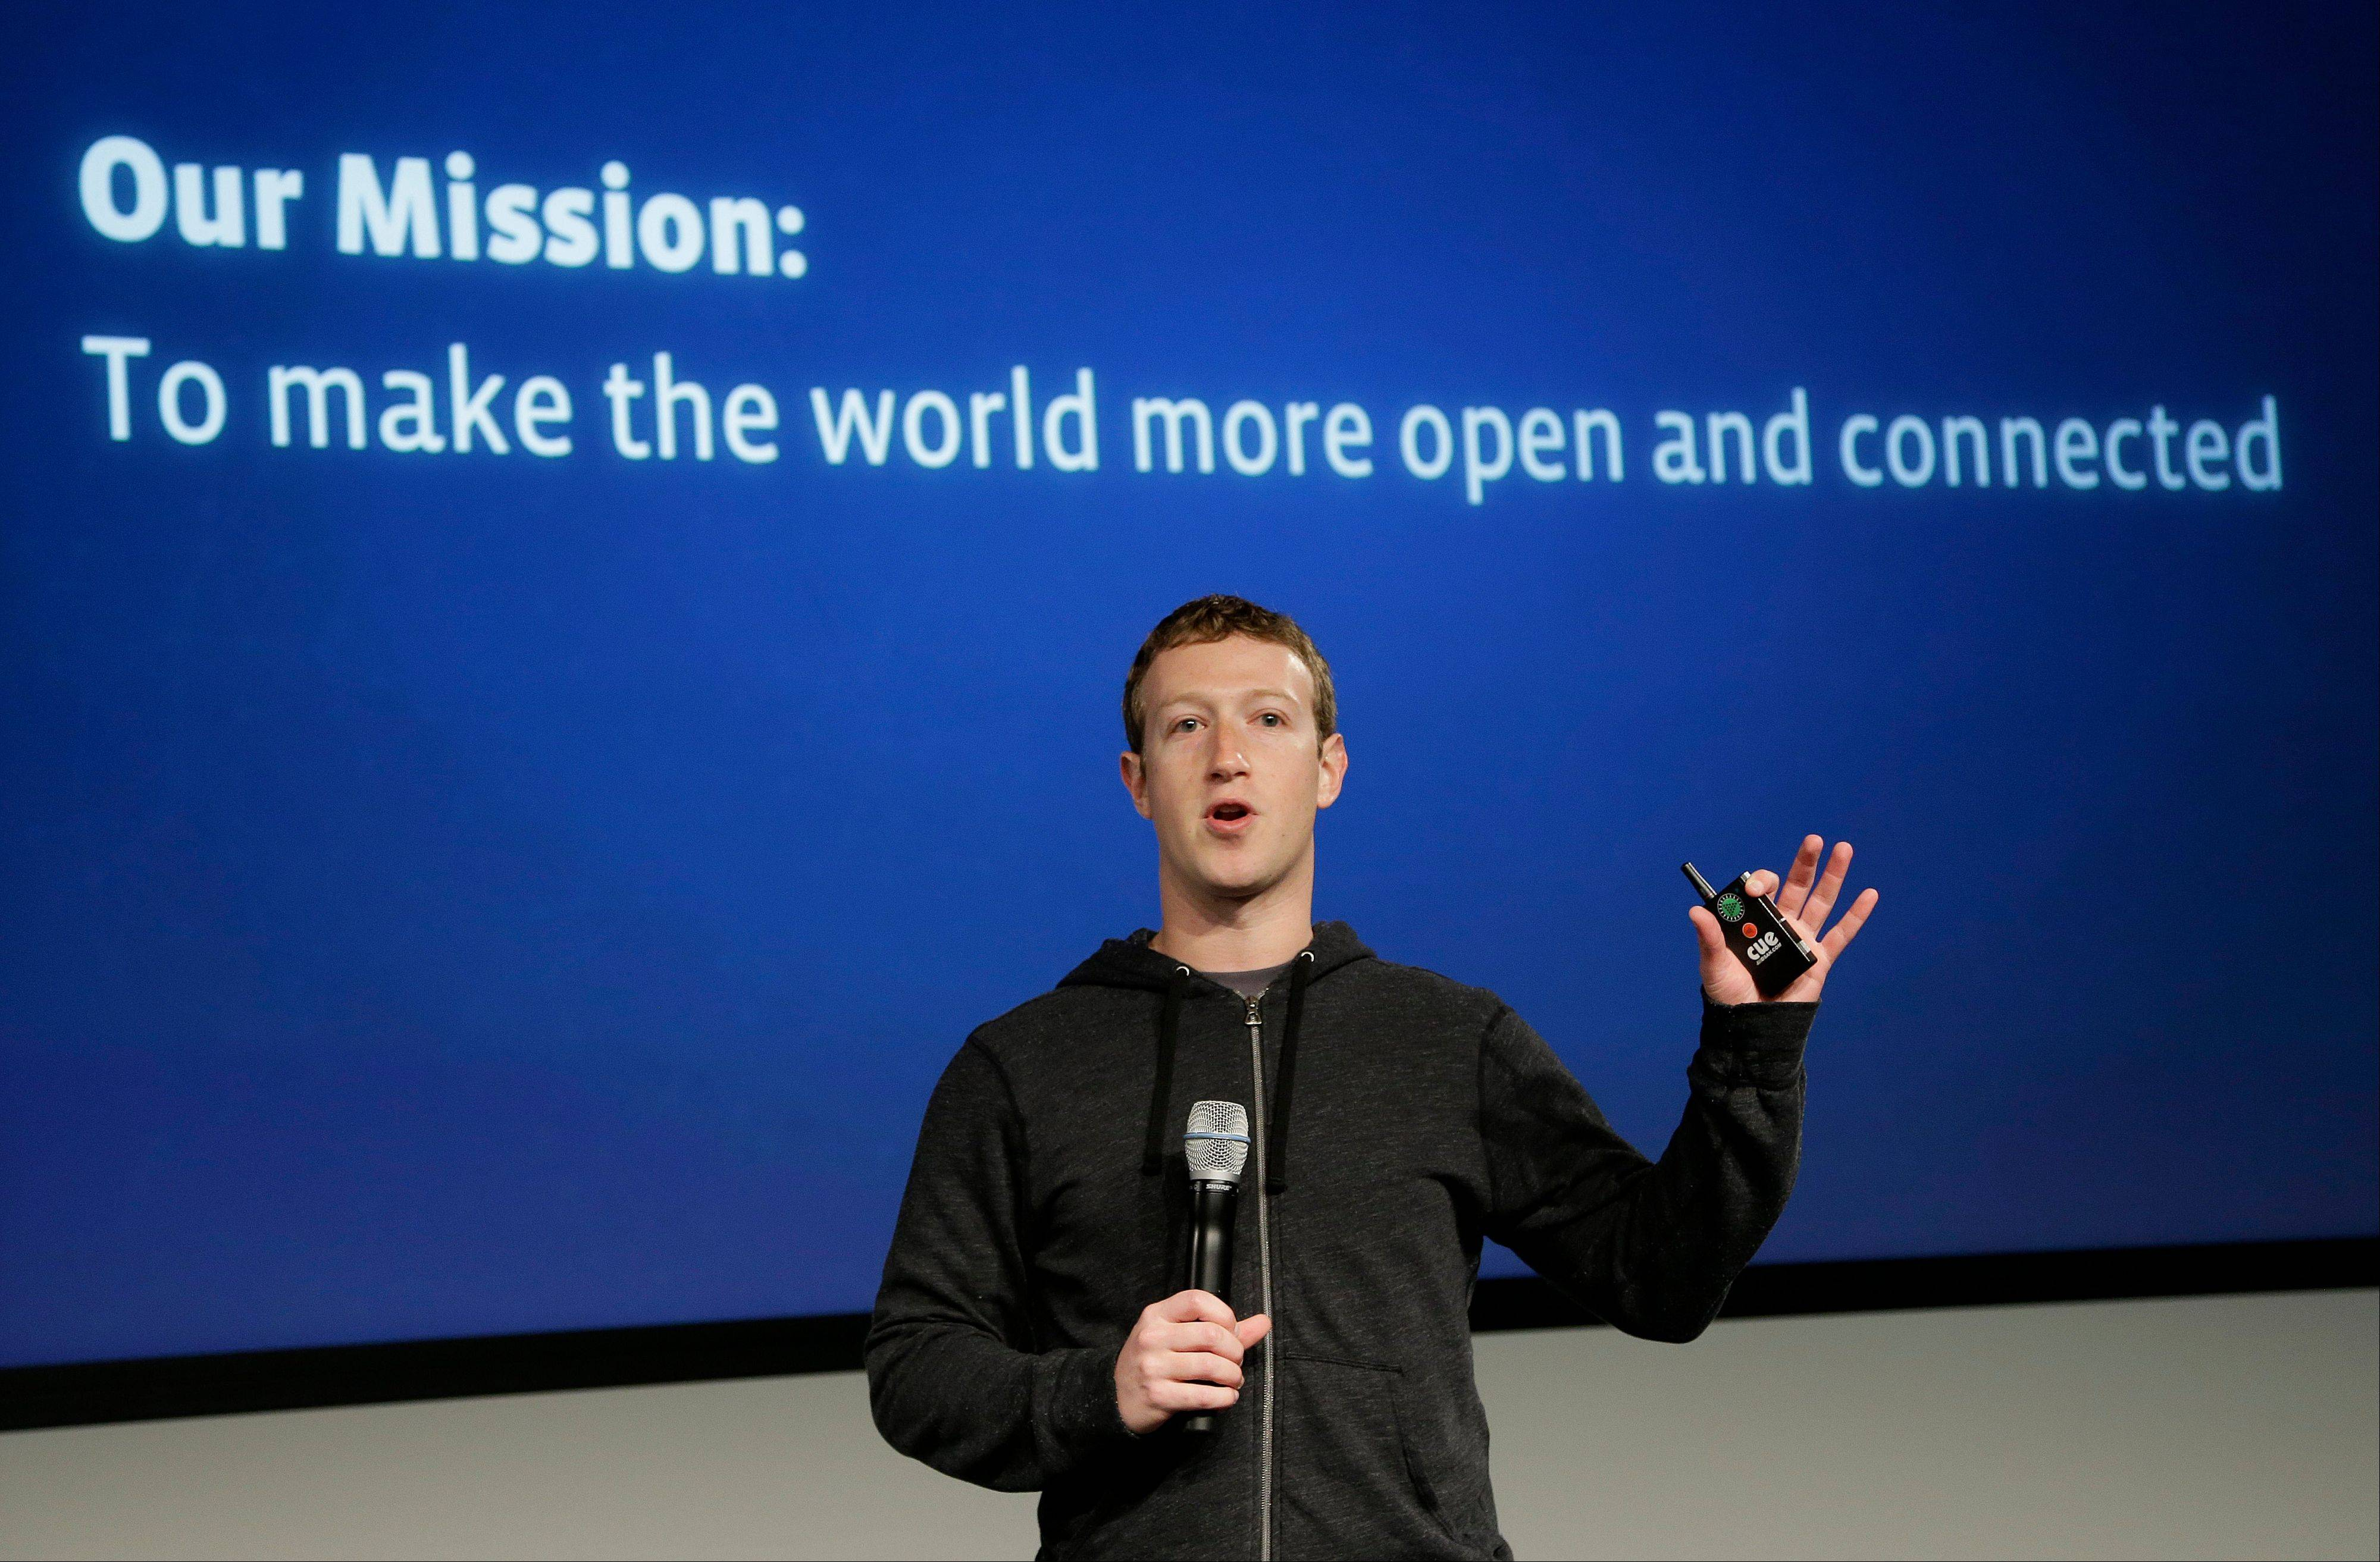 Facebook CEO Mark Zuckerberg wants to get more of the world's more than 7 billion people online through a partnership with some of the world's largest mobile technology companies. Facebook Inc. announced a partnership called Internet.org on Wednesday.